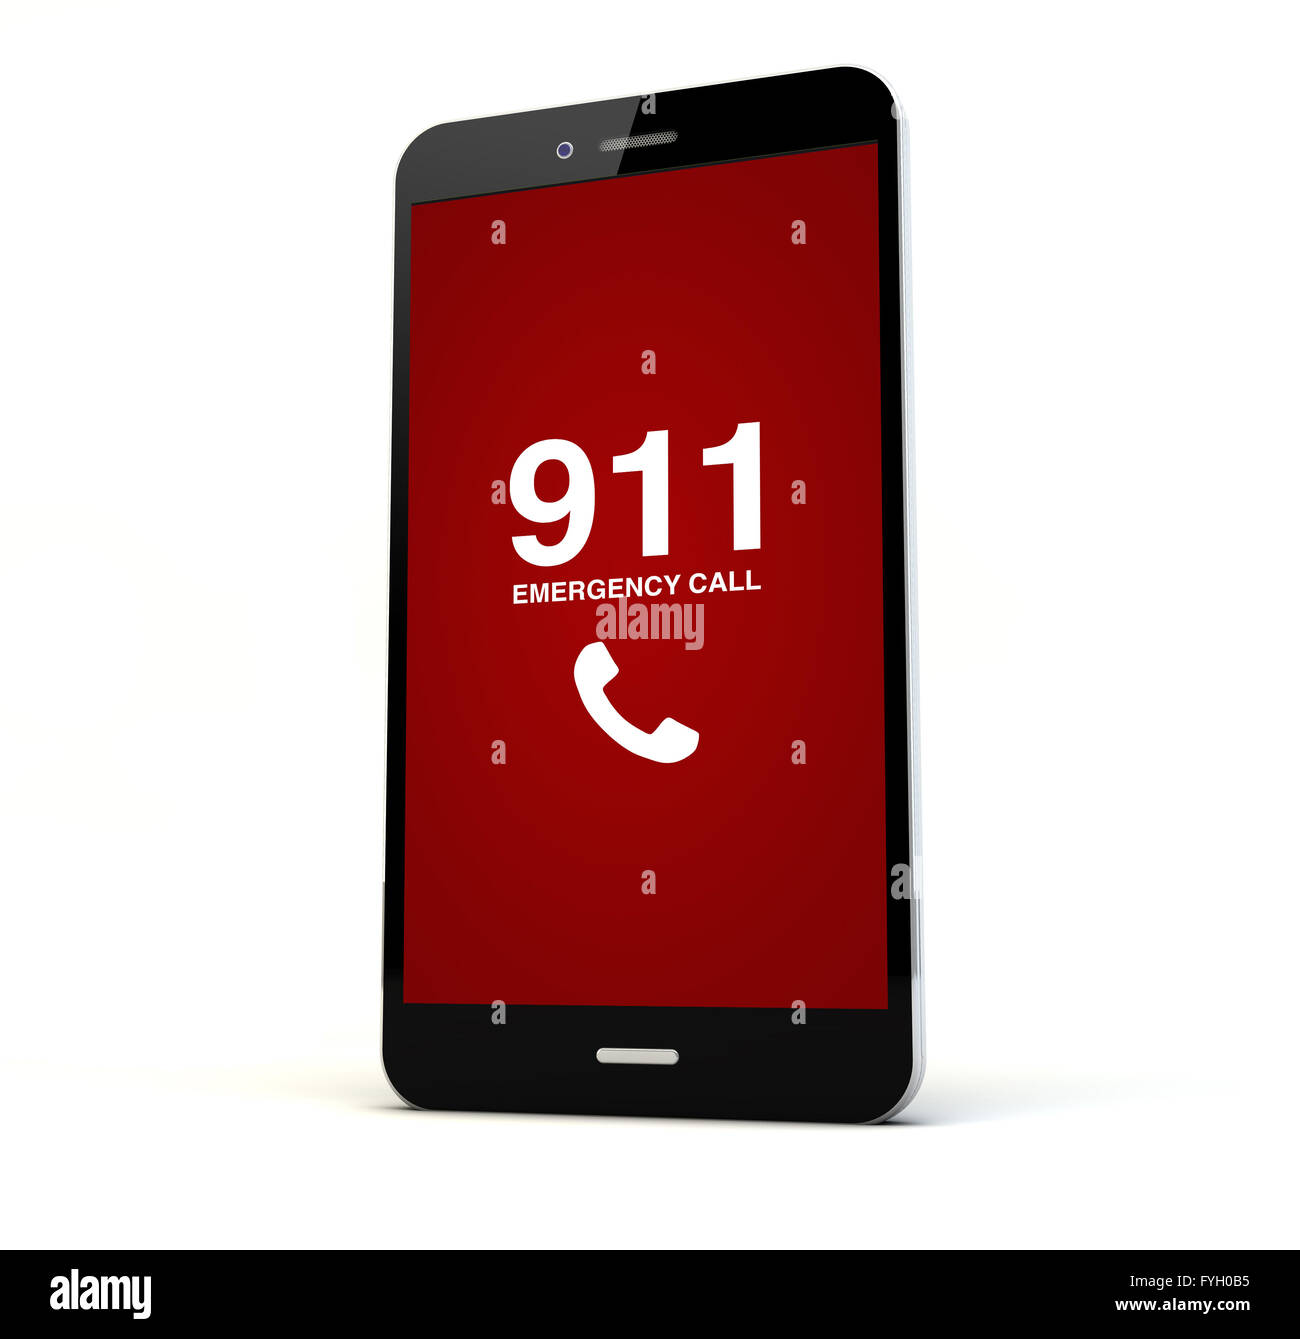 render of a phone with emergency call on the screen isolated. Screen graphics are made up. - Stock Image